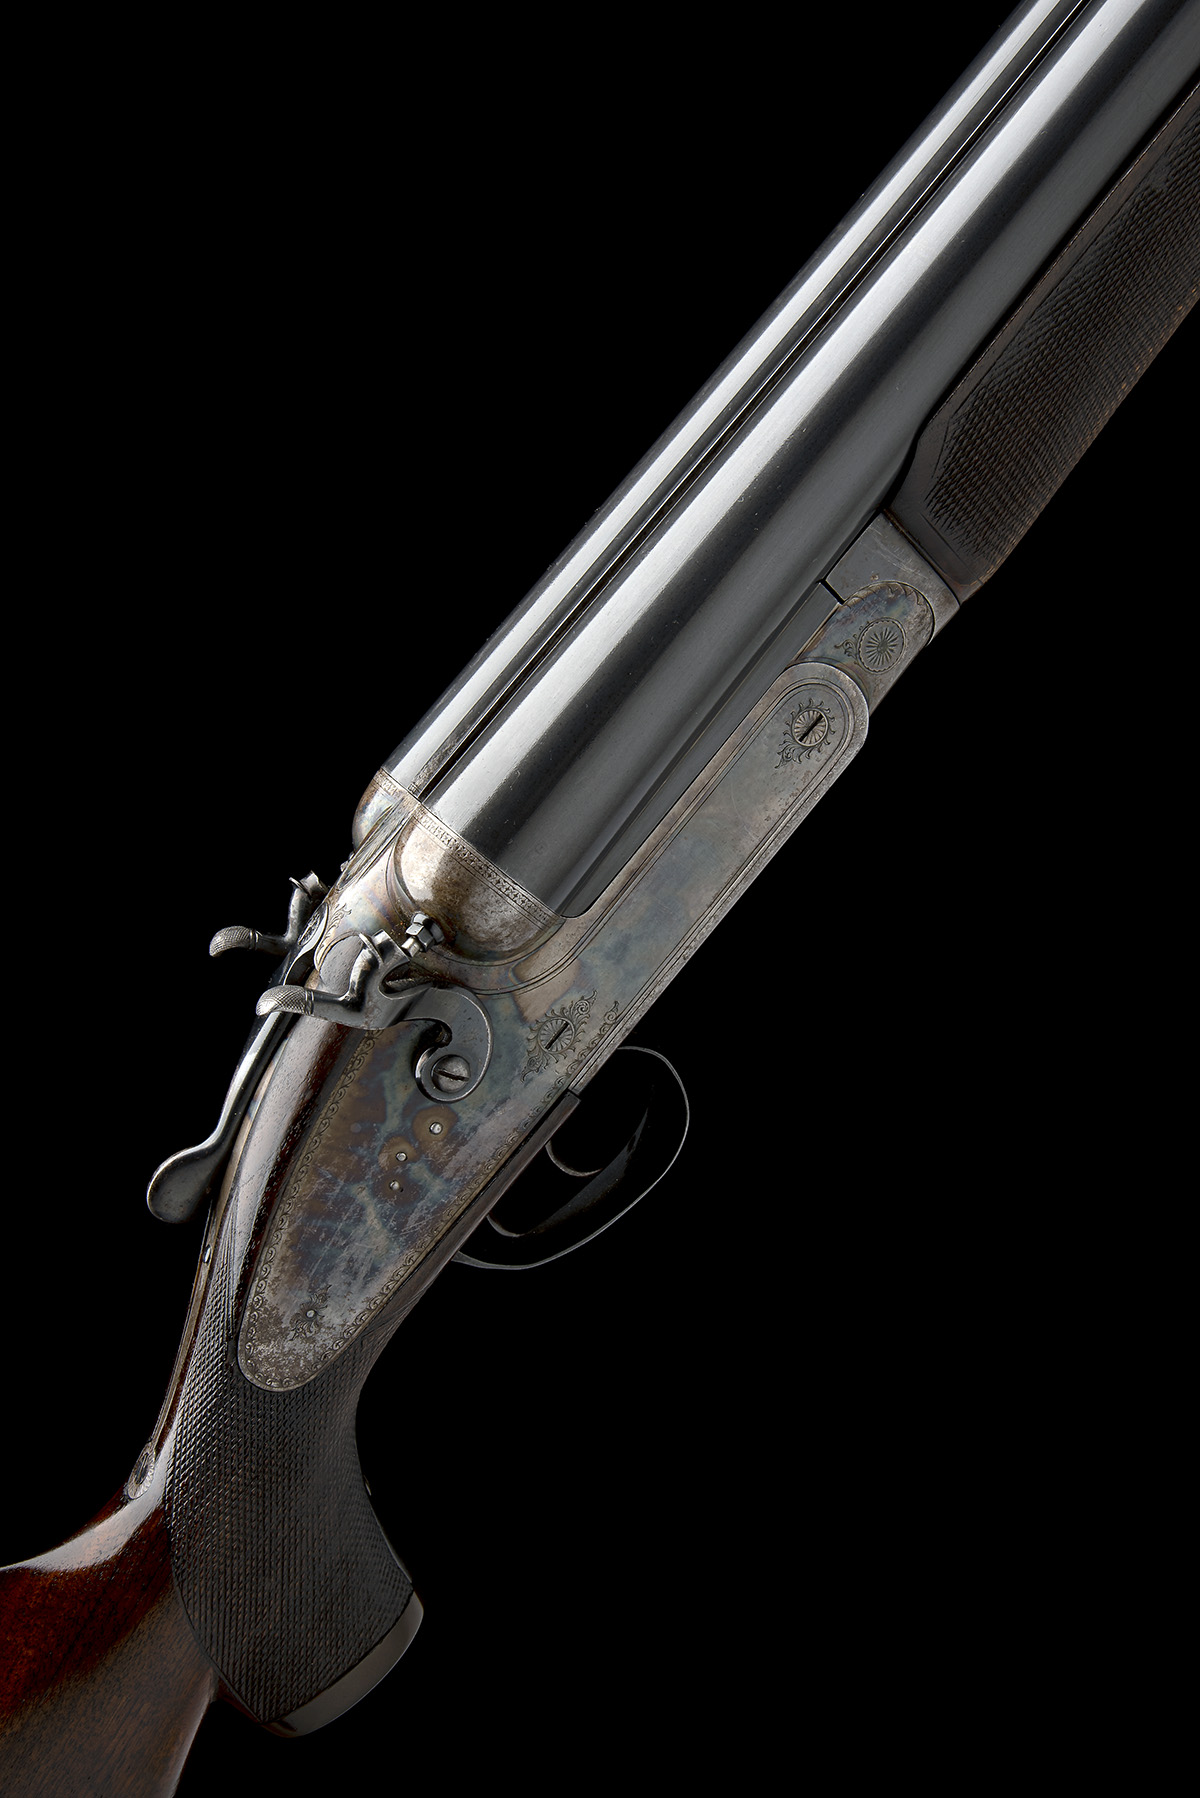 A. MYERS A MASSIVE 4-BORE (4 1/2IN.) DOUBLE-BARRELLED TOPLEVER HAMMERGUN, serial no. 806, for